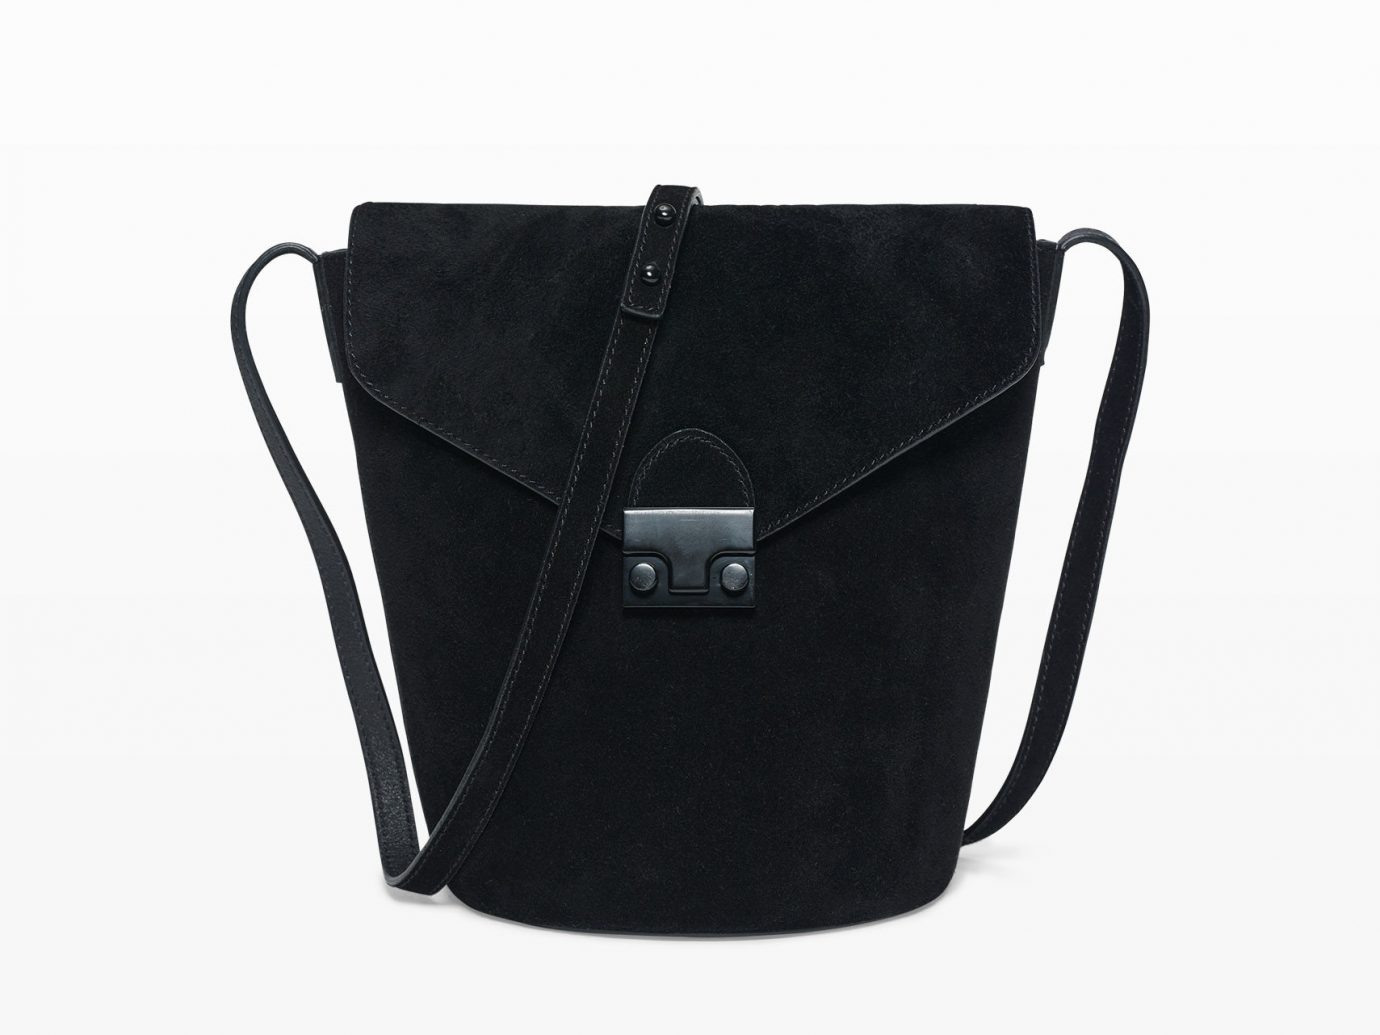 Style + Design bag handbag leather shoulder bag black messenger bag fashion accessory brand accessory textile